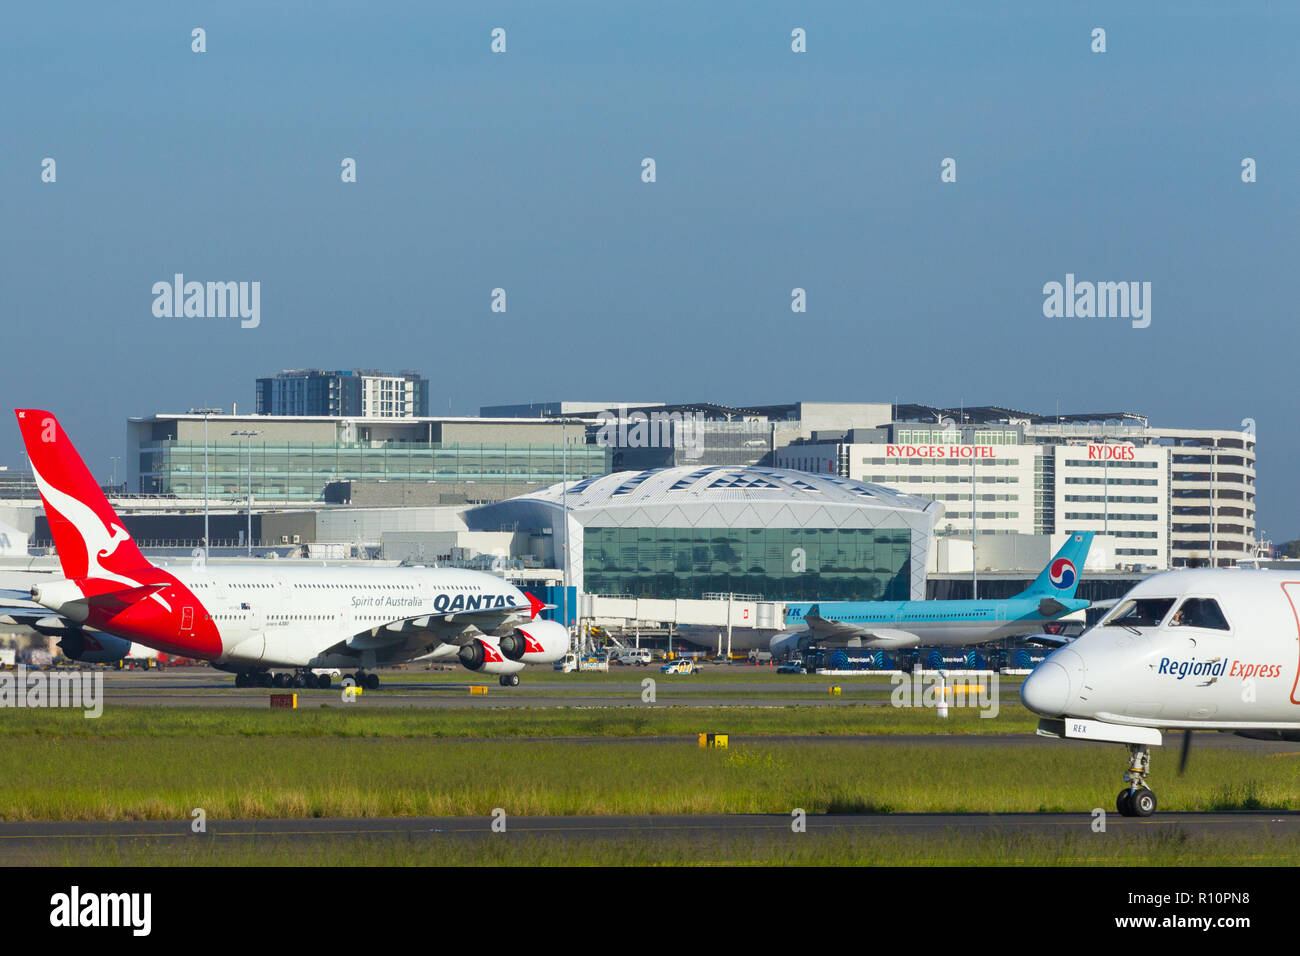 Detail from Sydney (Kingsford Smith) Airport in Sydney, Australia, looking towards the International Terminal on the western side of the airport. Pictured: a Qantas Airbus A380 (call sign VH-OQE) taxying towards the International Terminal with a REX Regional Express aircraft in the foreground. - Stock Image